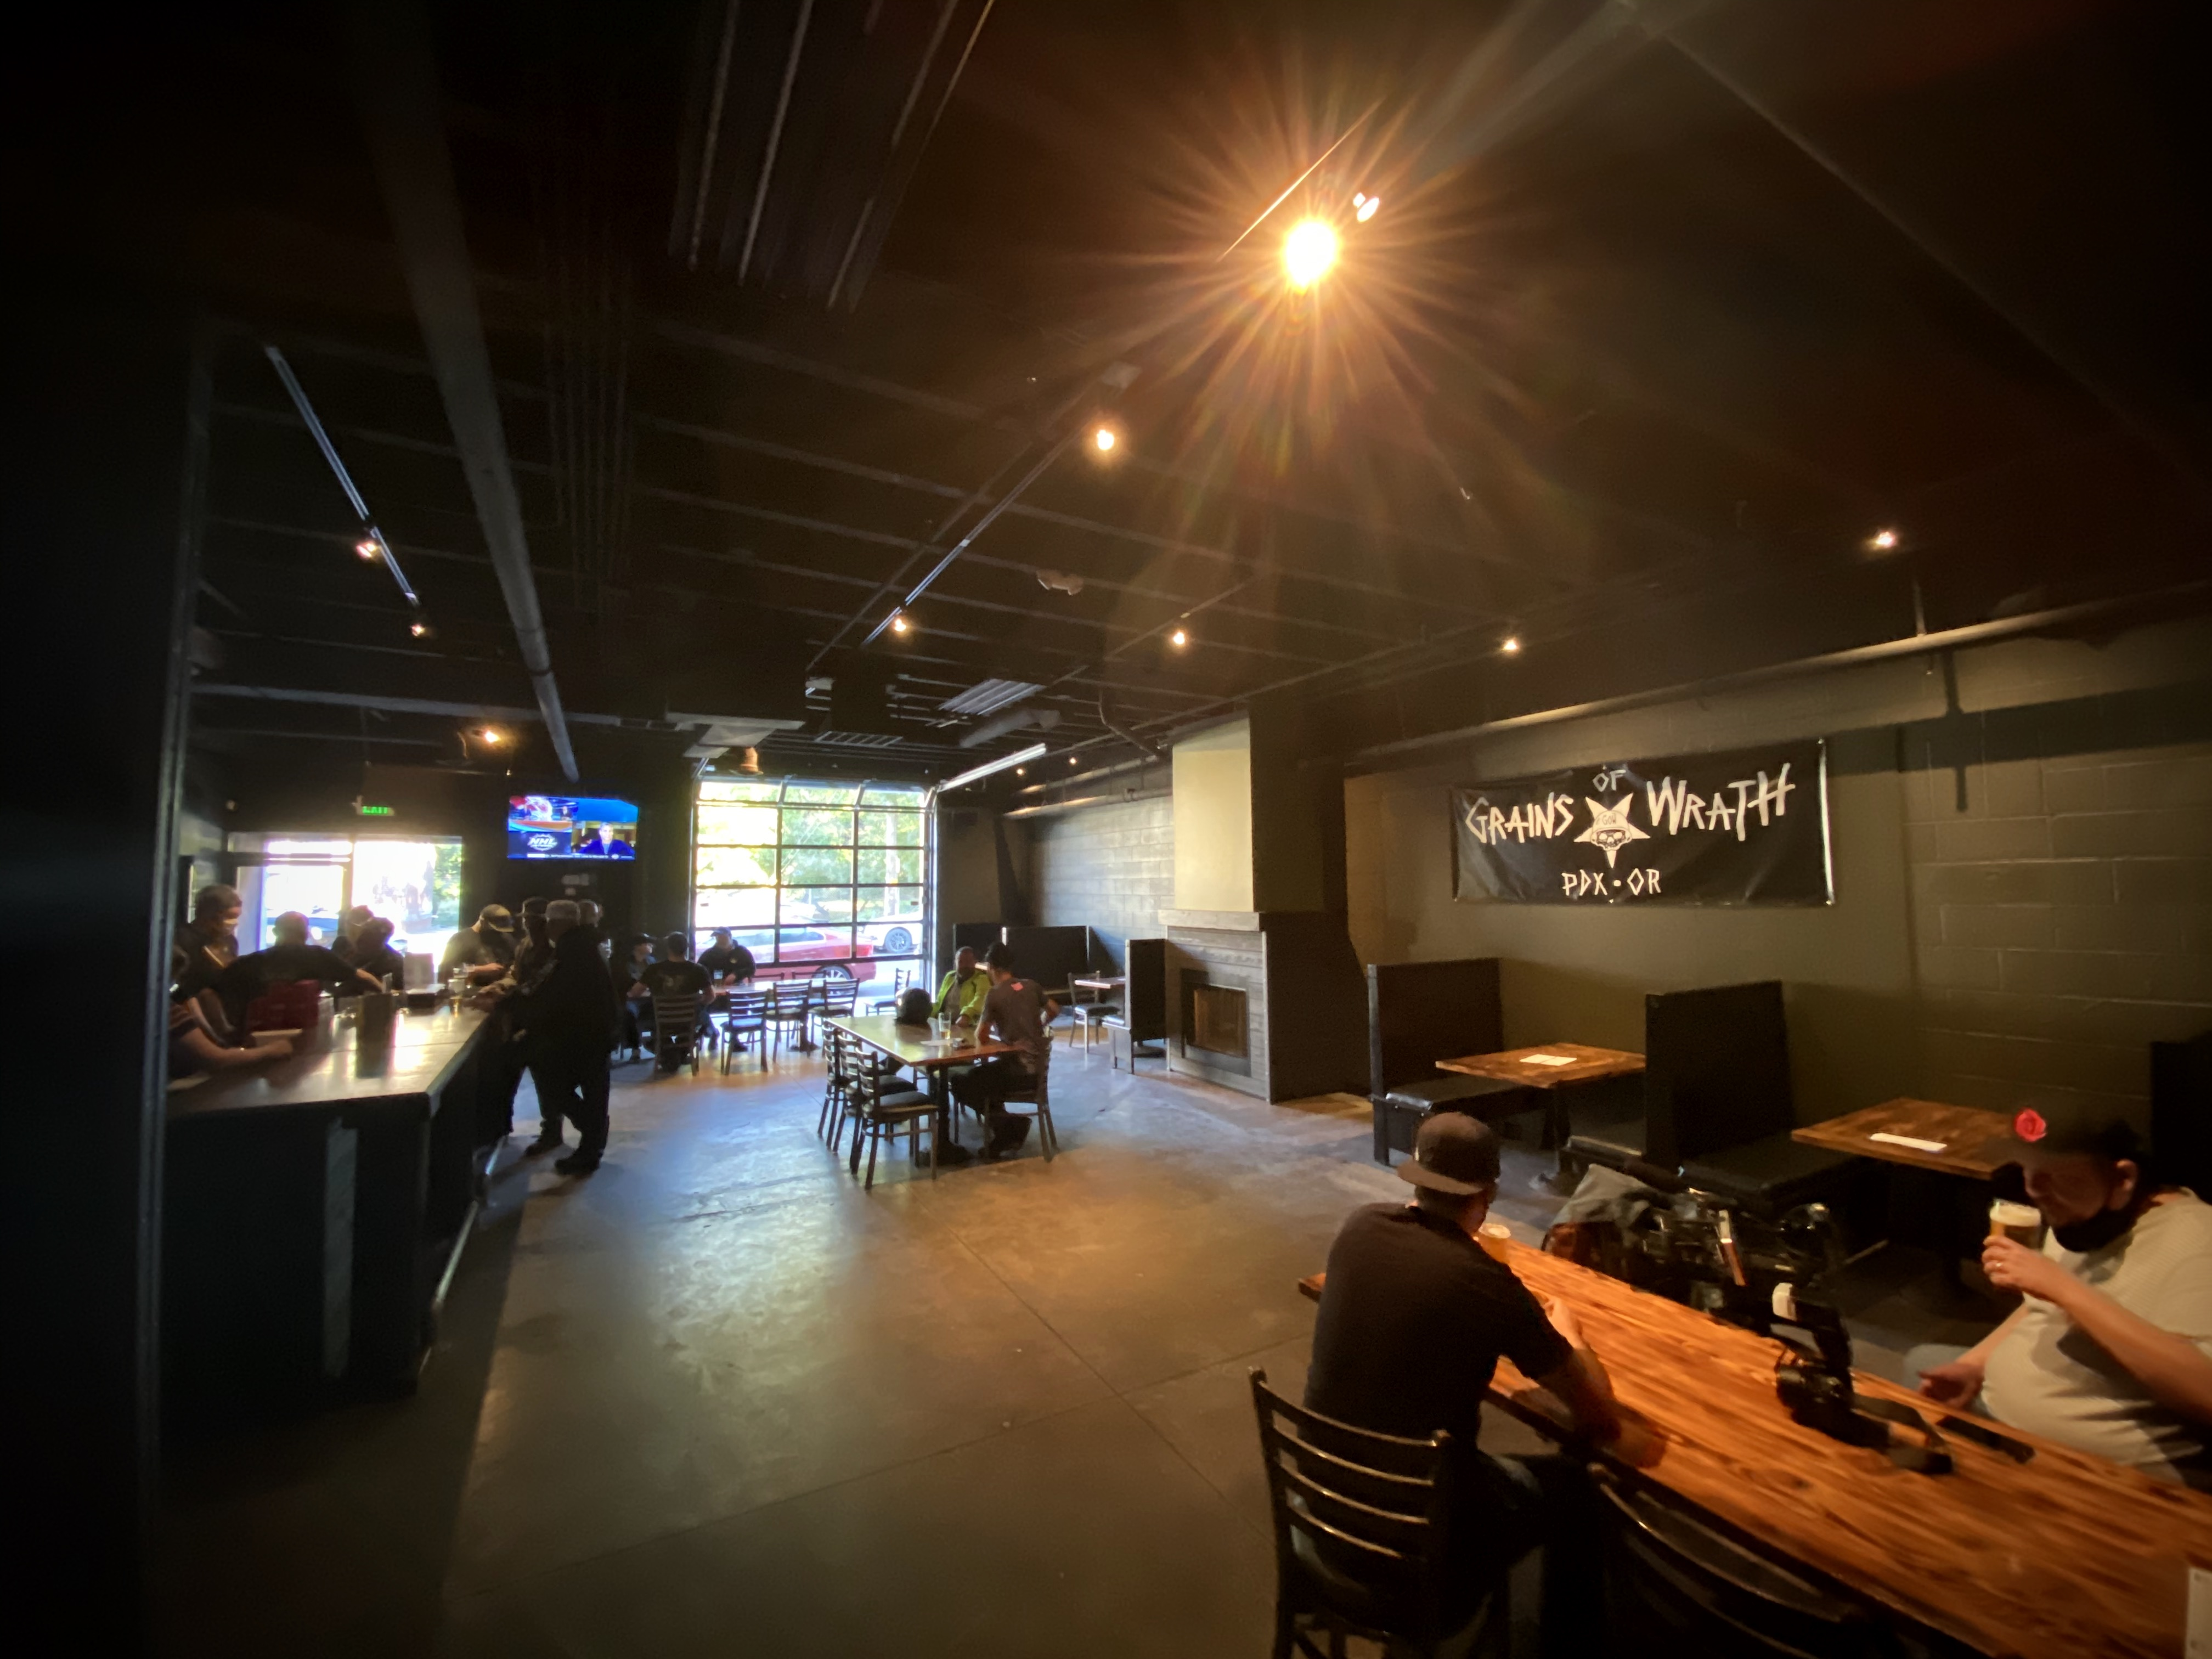 The dark, all black painted space at the newly opened Grains of Wrath - PDX.